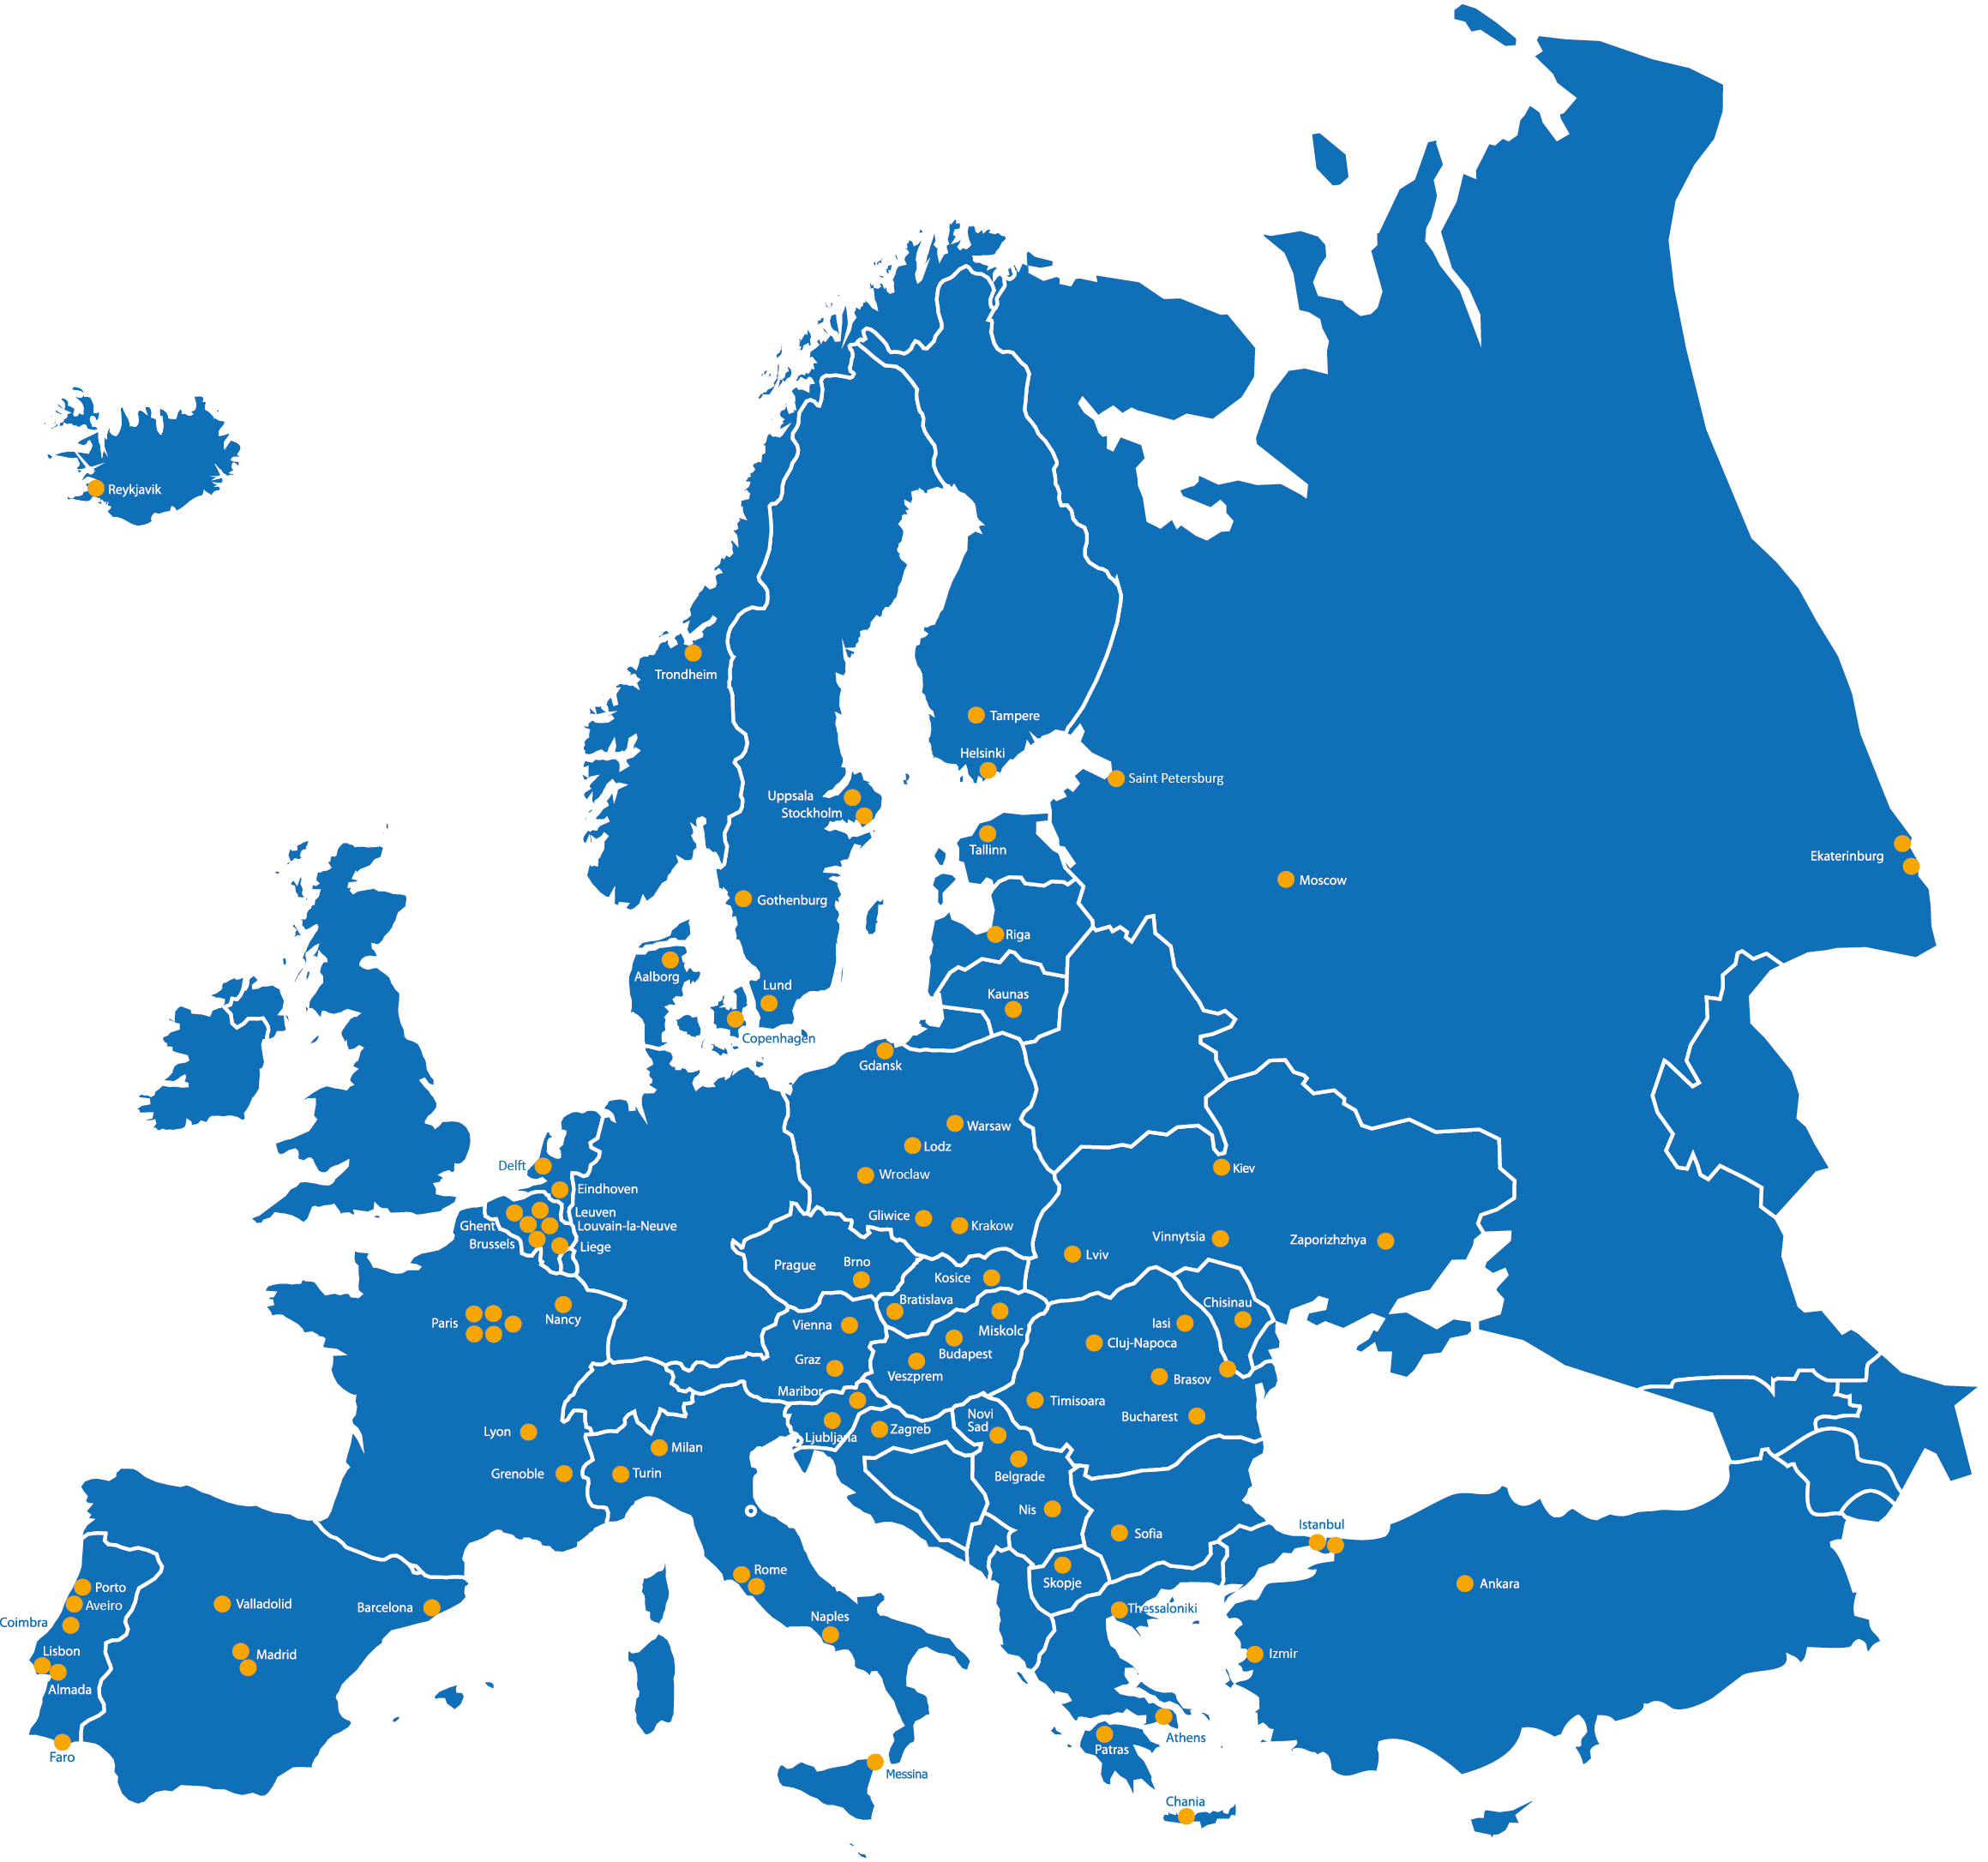 png europe map transparent europe map png images pluspng